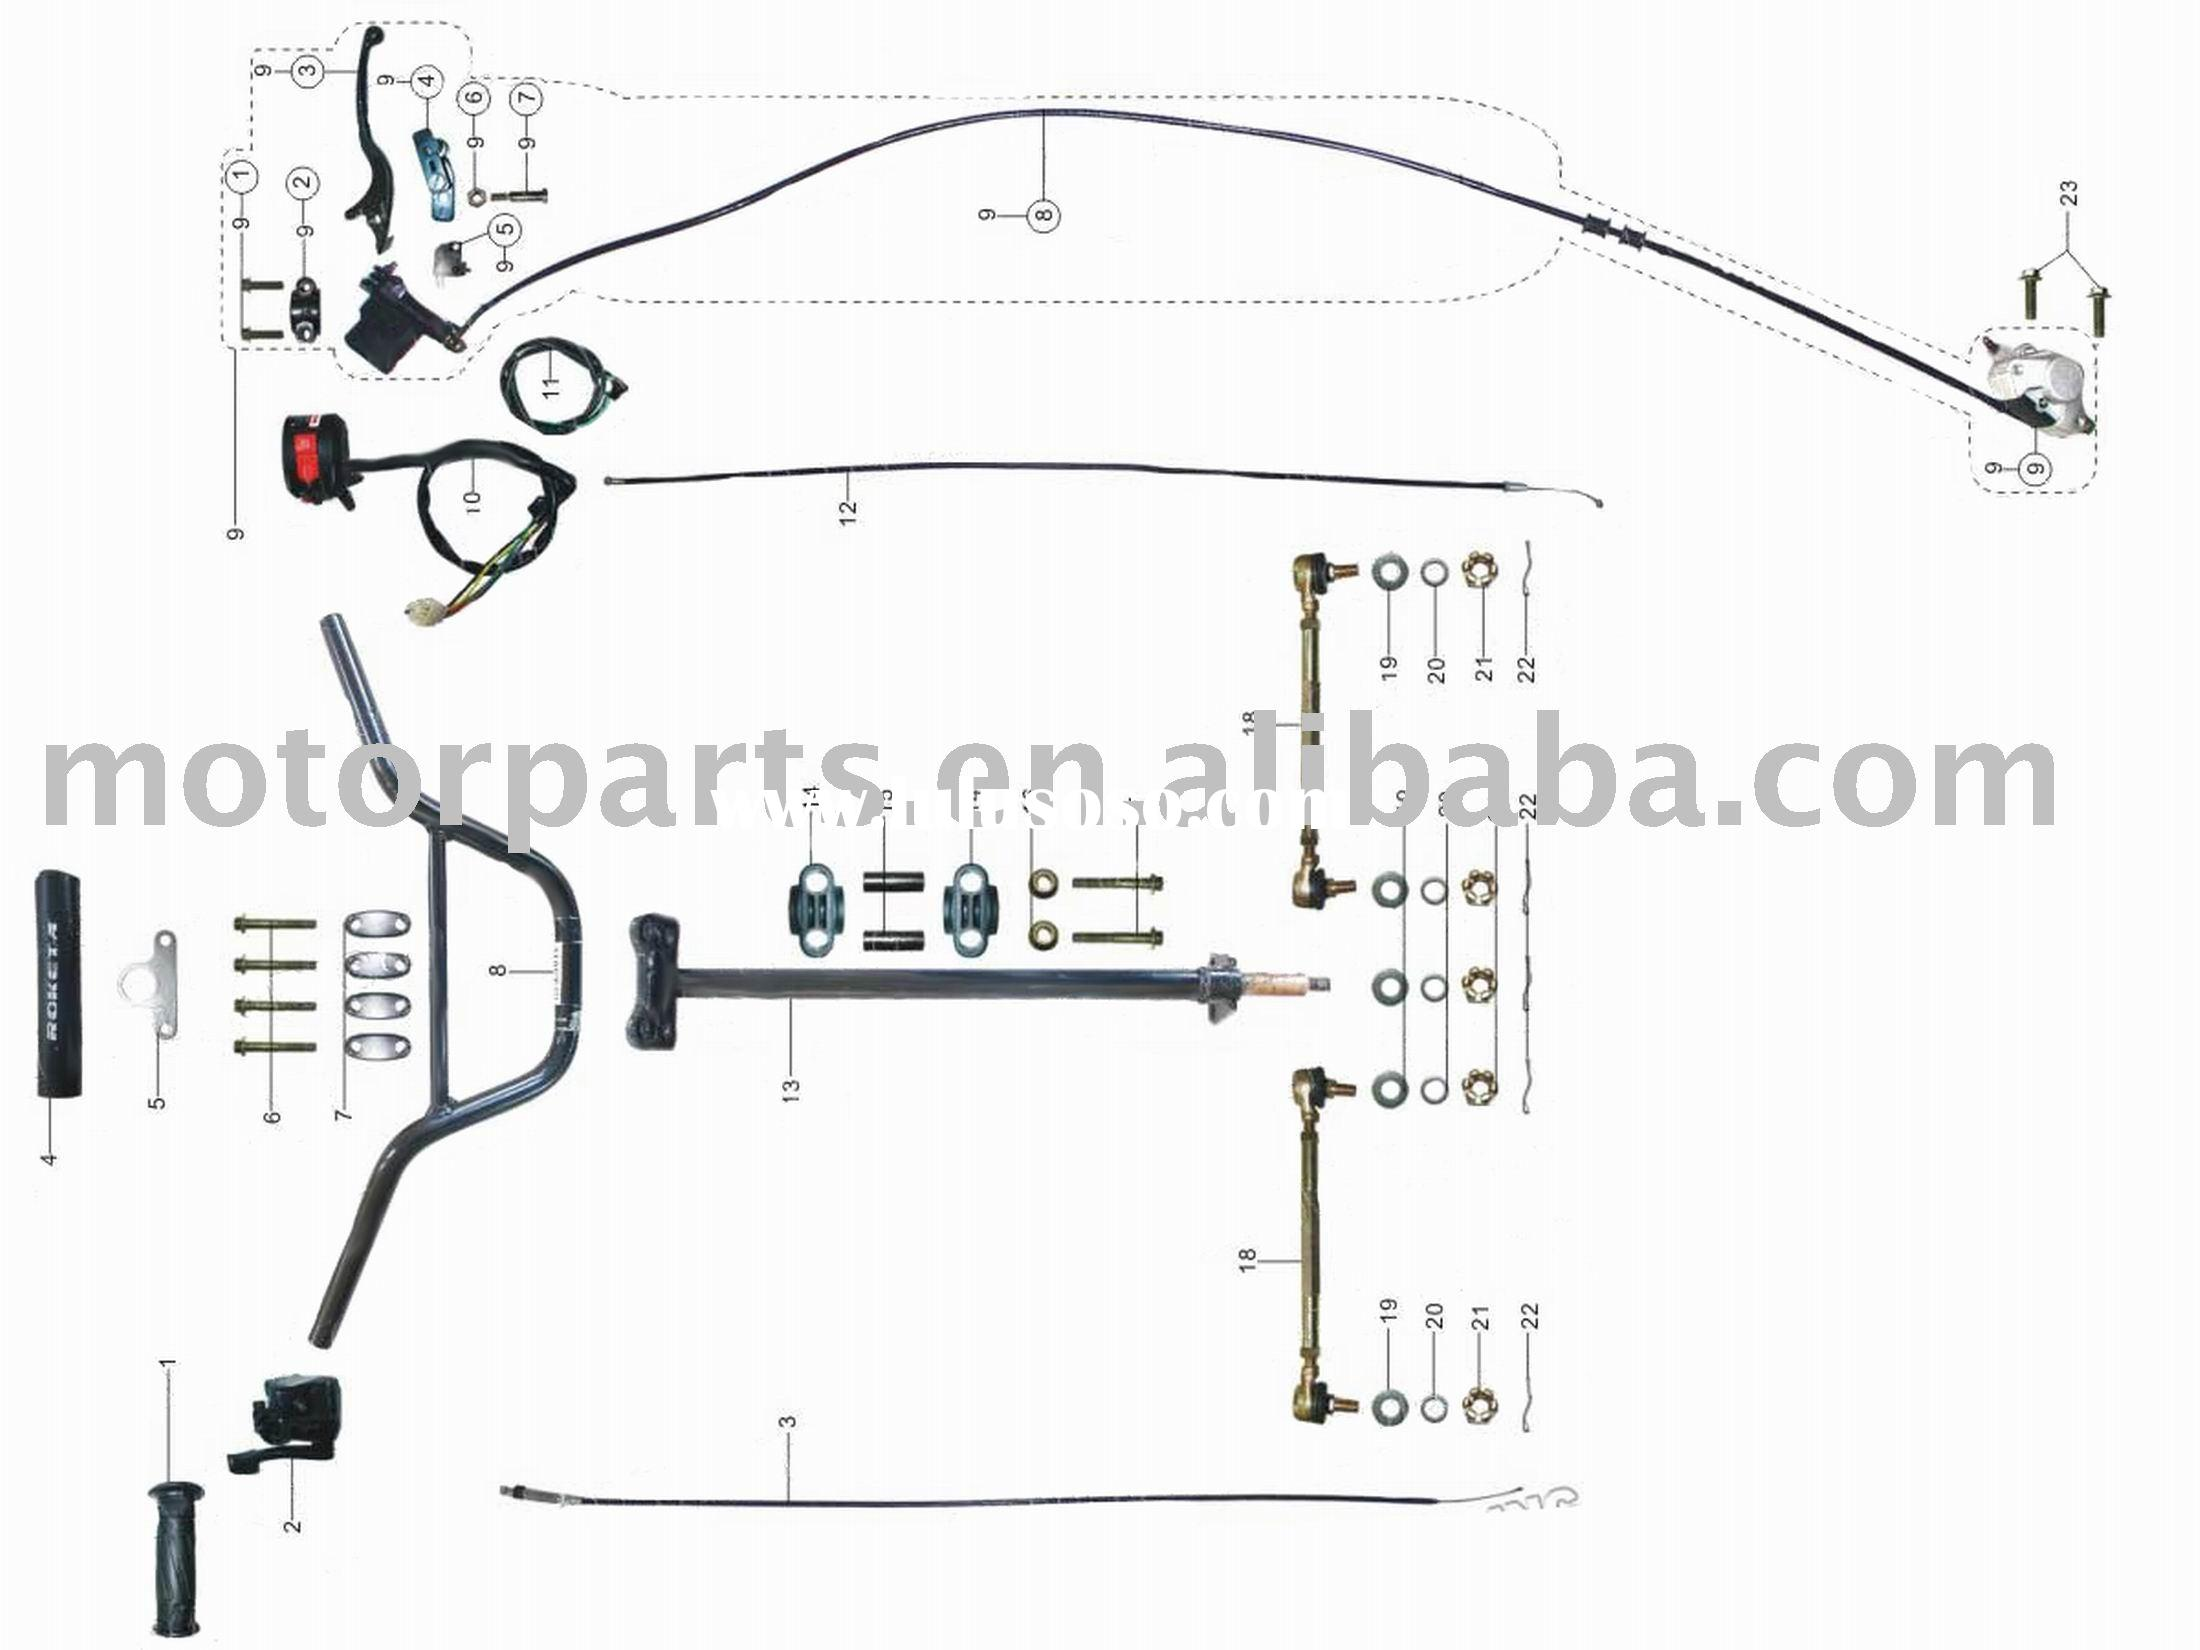 Derbi Senda R Wiring Diagram Schematics Diagrams Taotao Ata 110h1 31 Images Readyjetset Co Sm50 50r